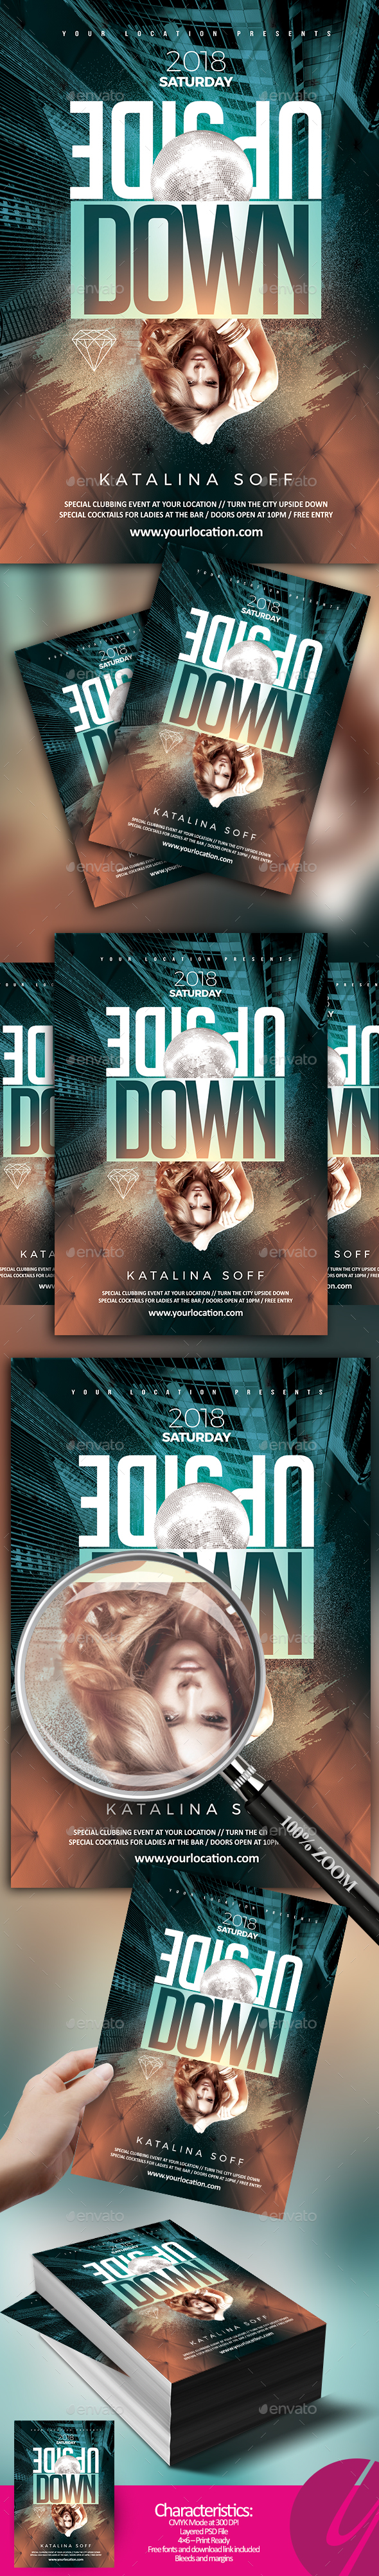 Upside Down Party Flyer - Clubs & Parties Events